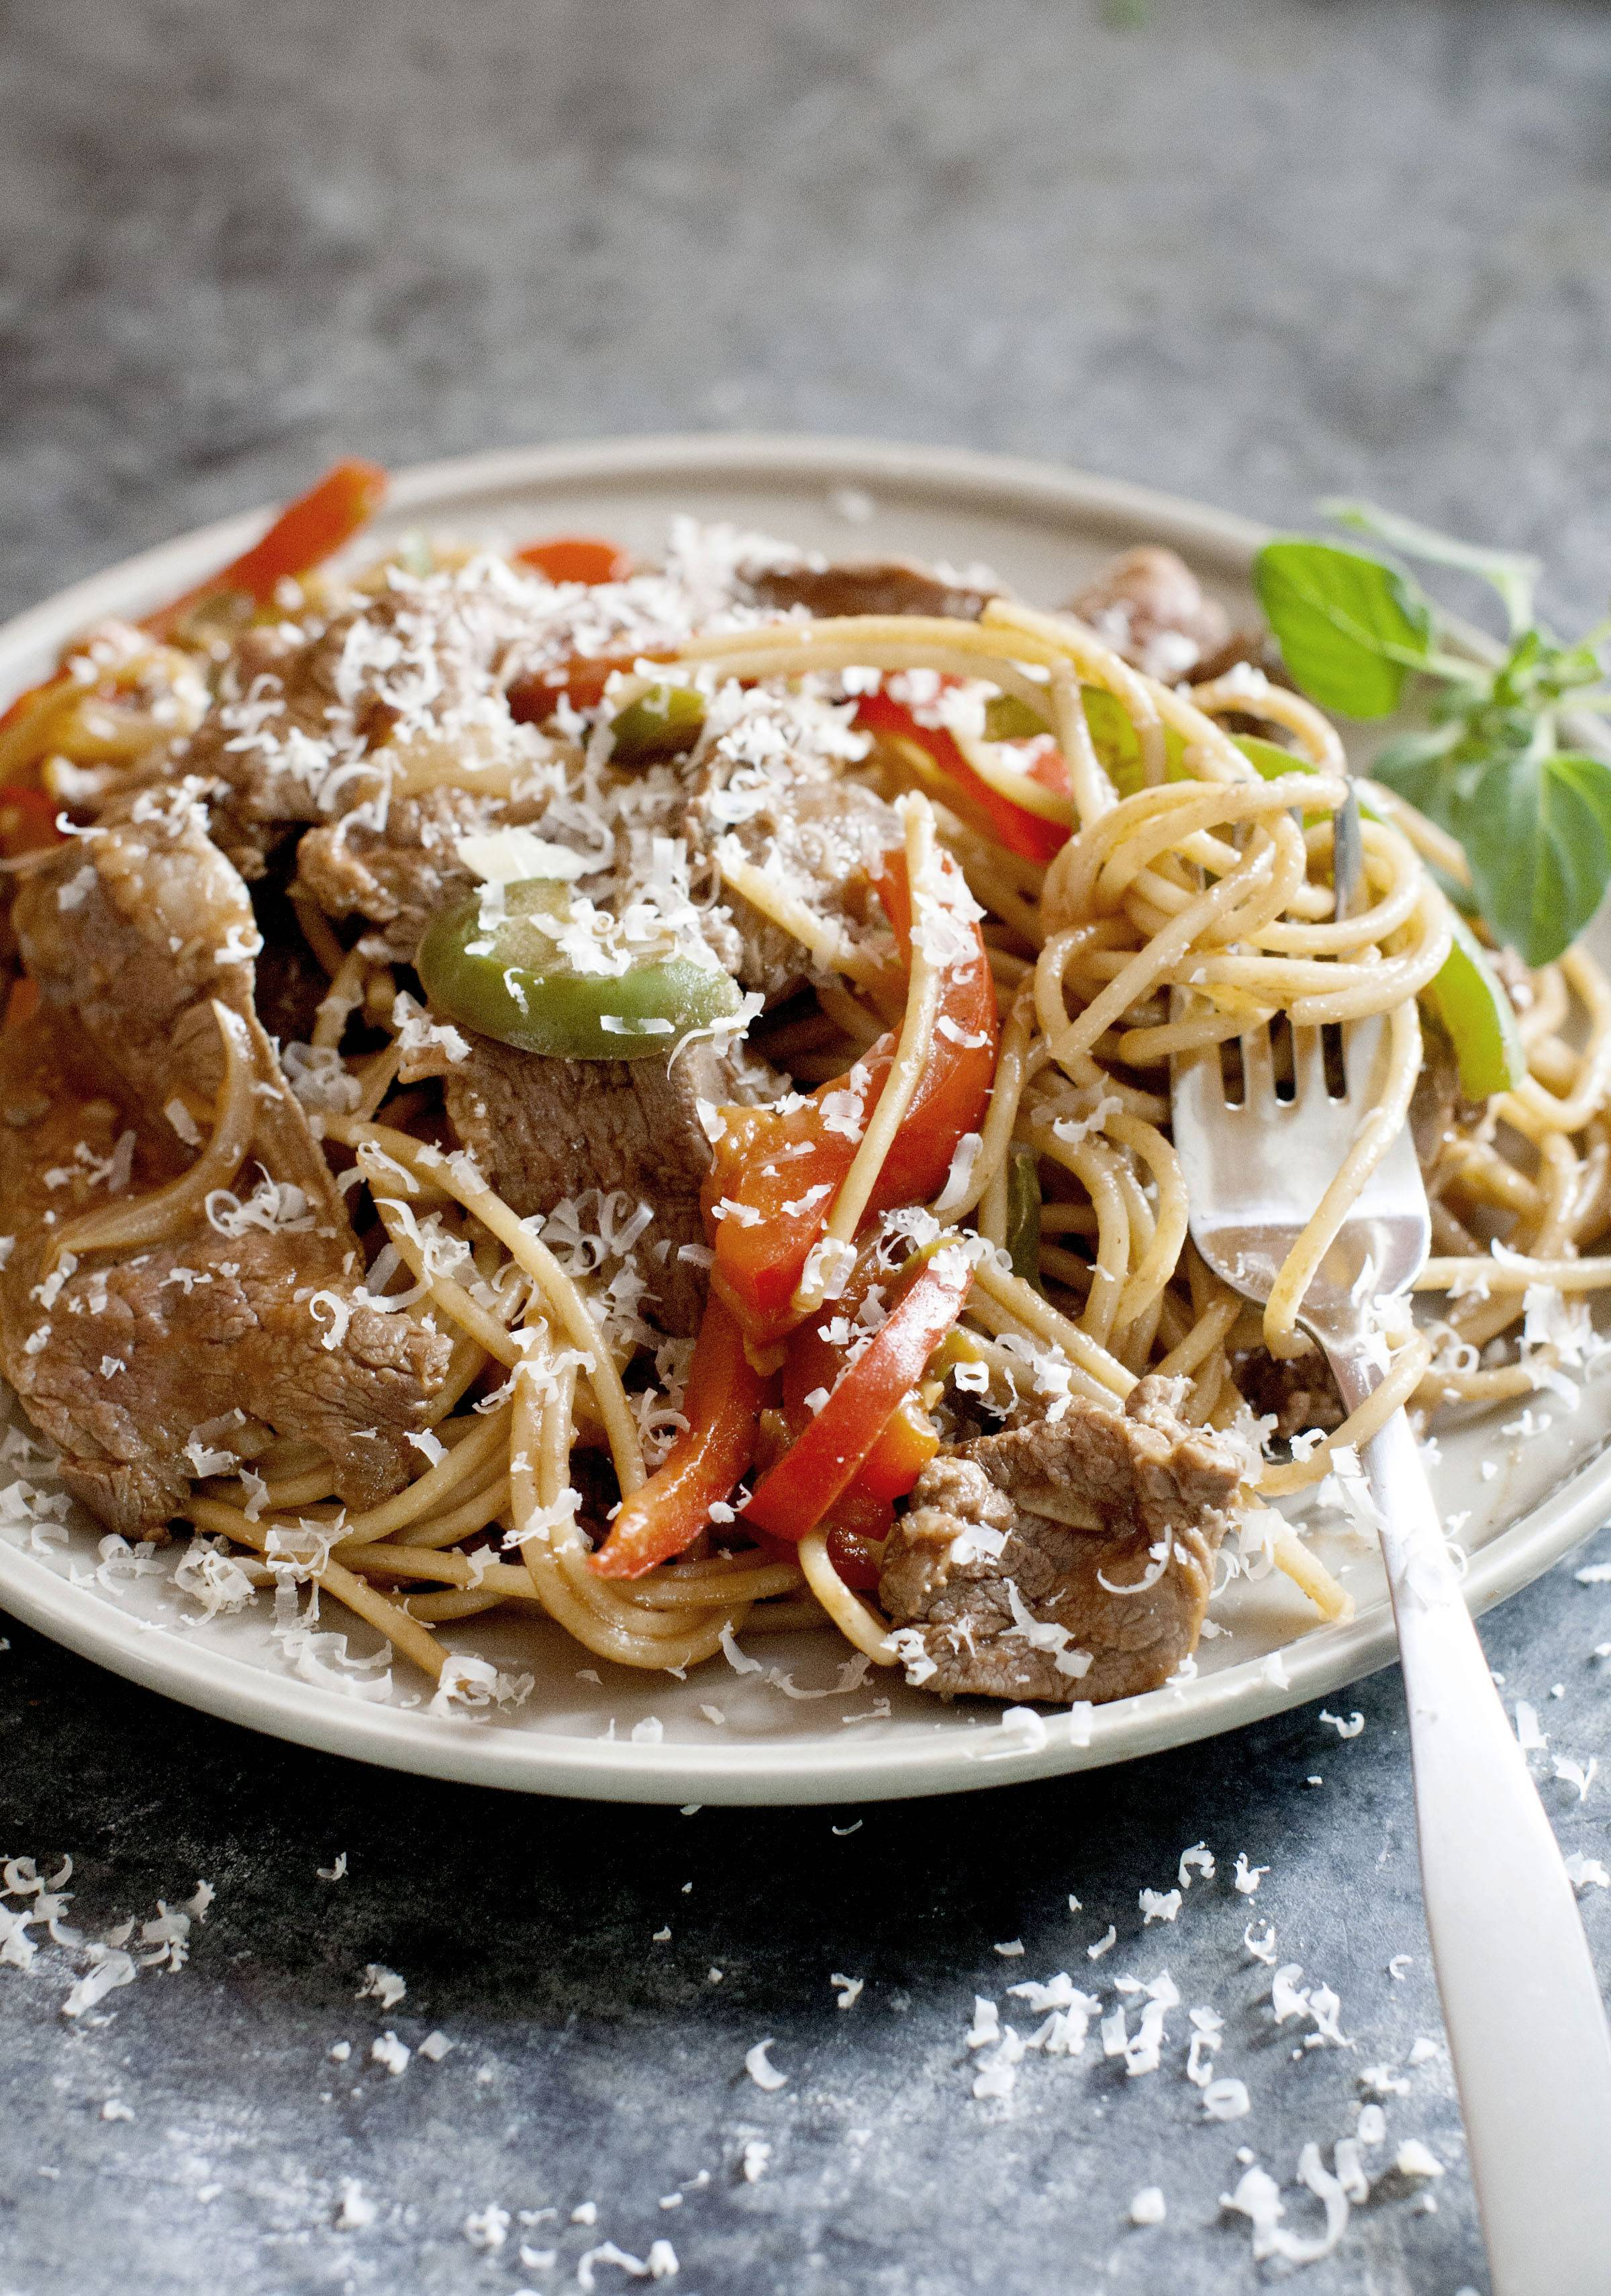 Steak and cheese grinder recast as a pasta dinner in less than 30 minutes